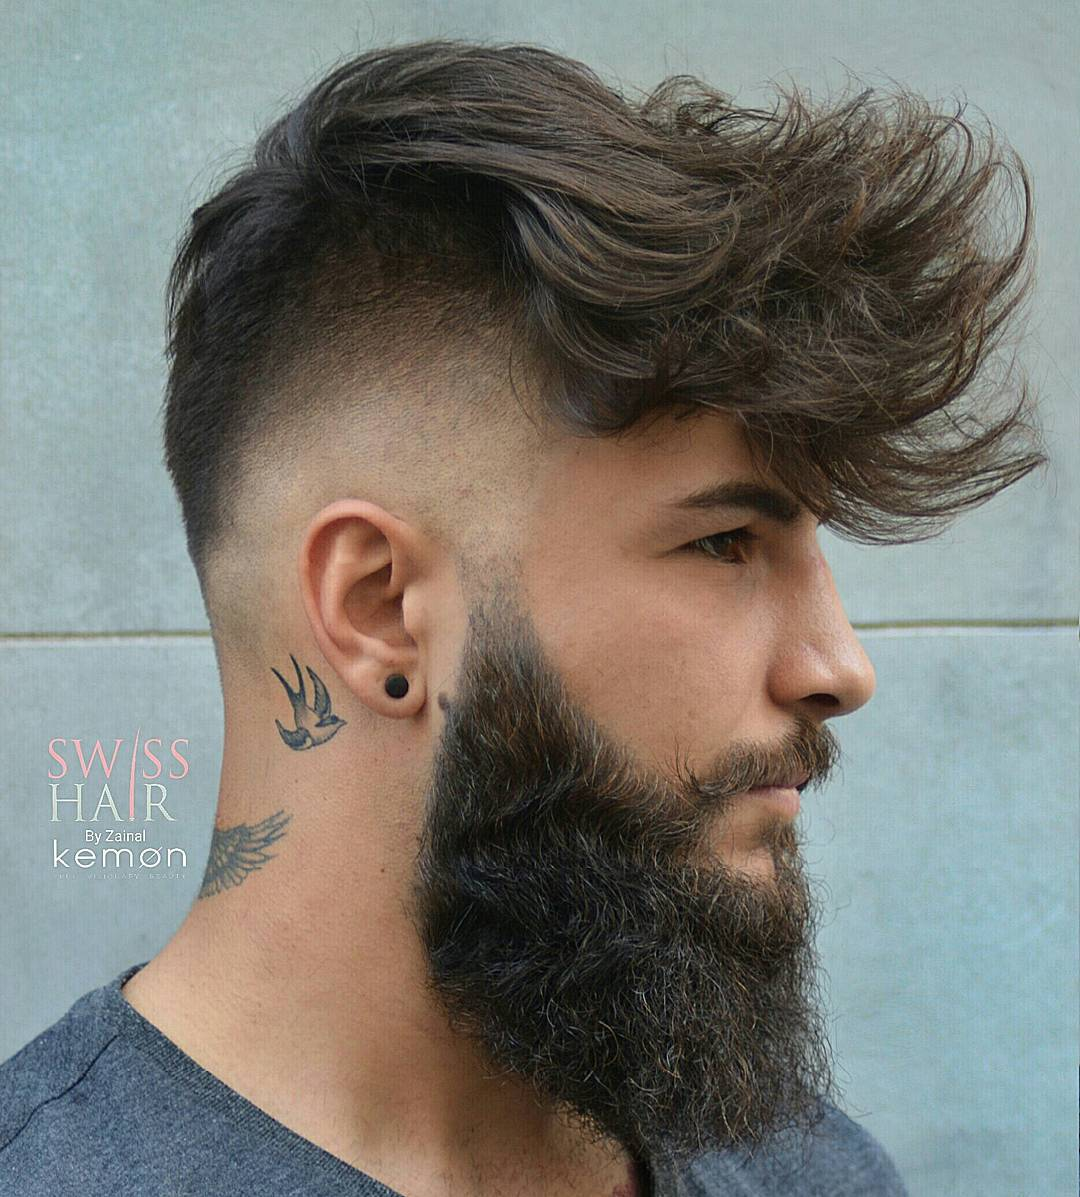 Bald Fade Undercut Hairstyle For Men